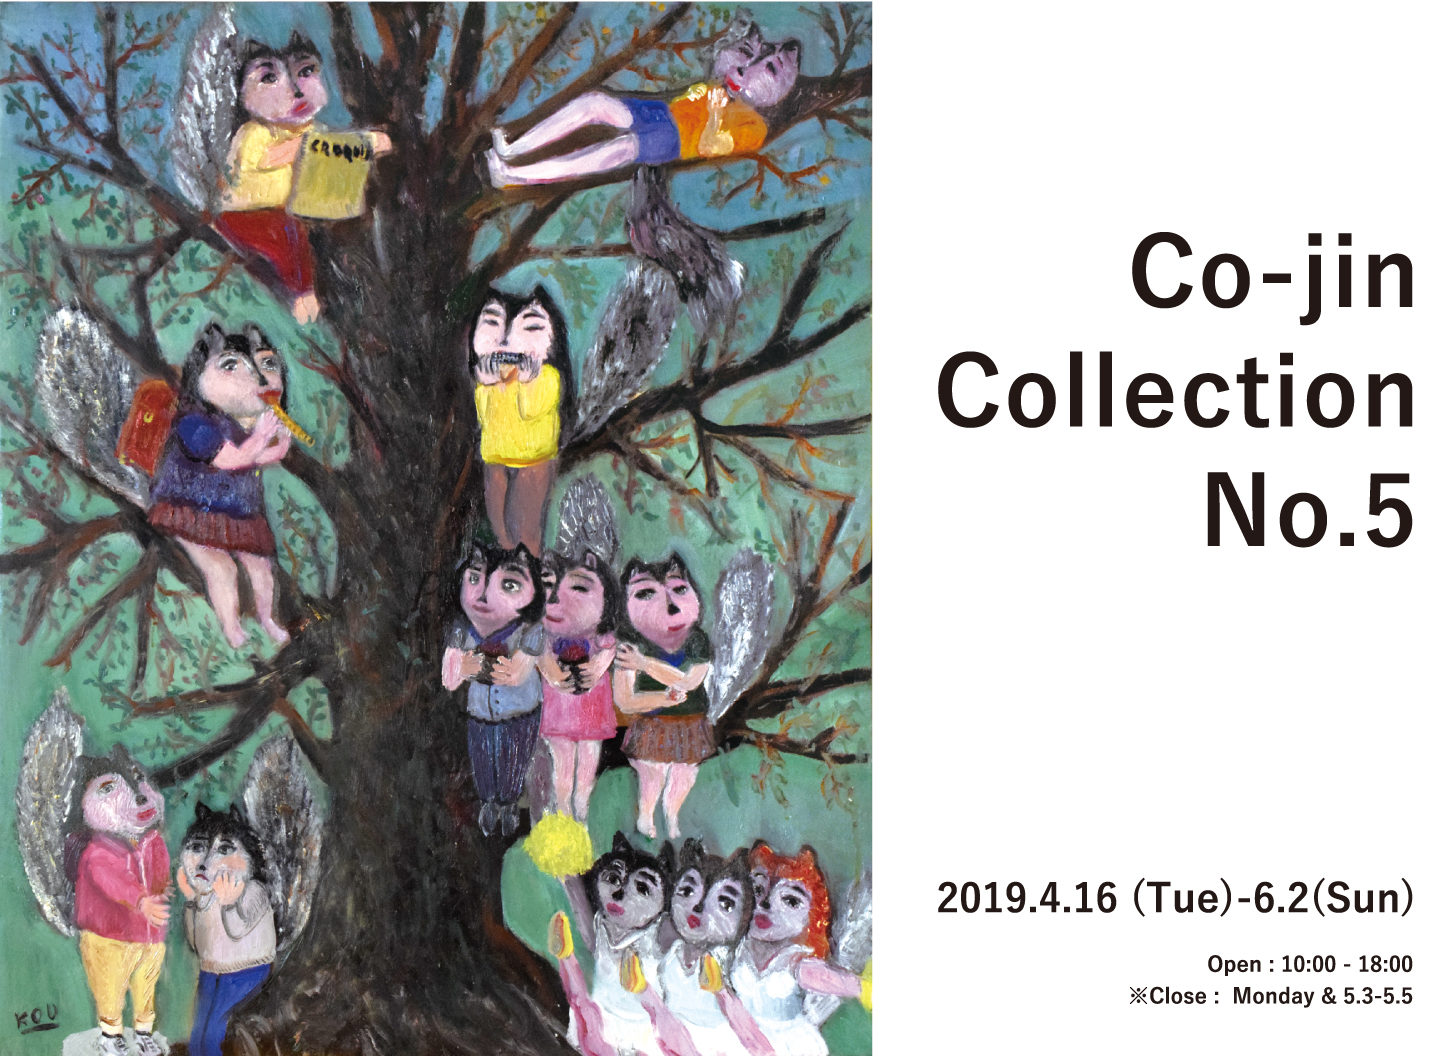 Co-jin Collection No.5